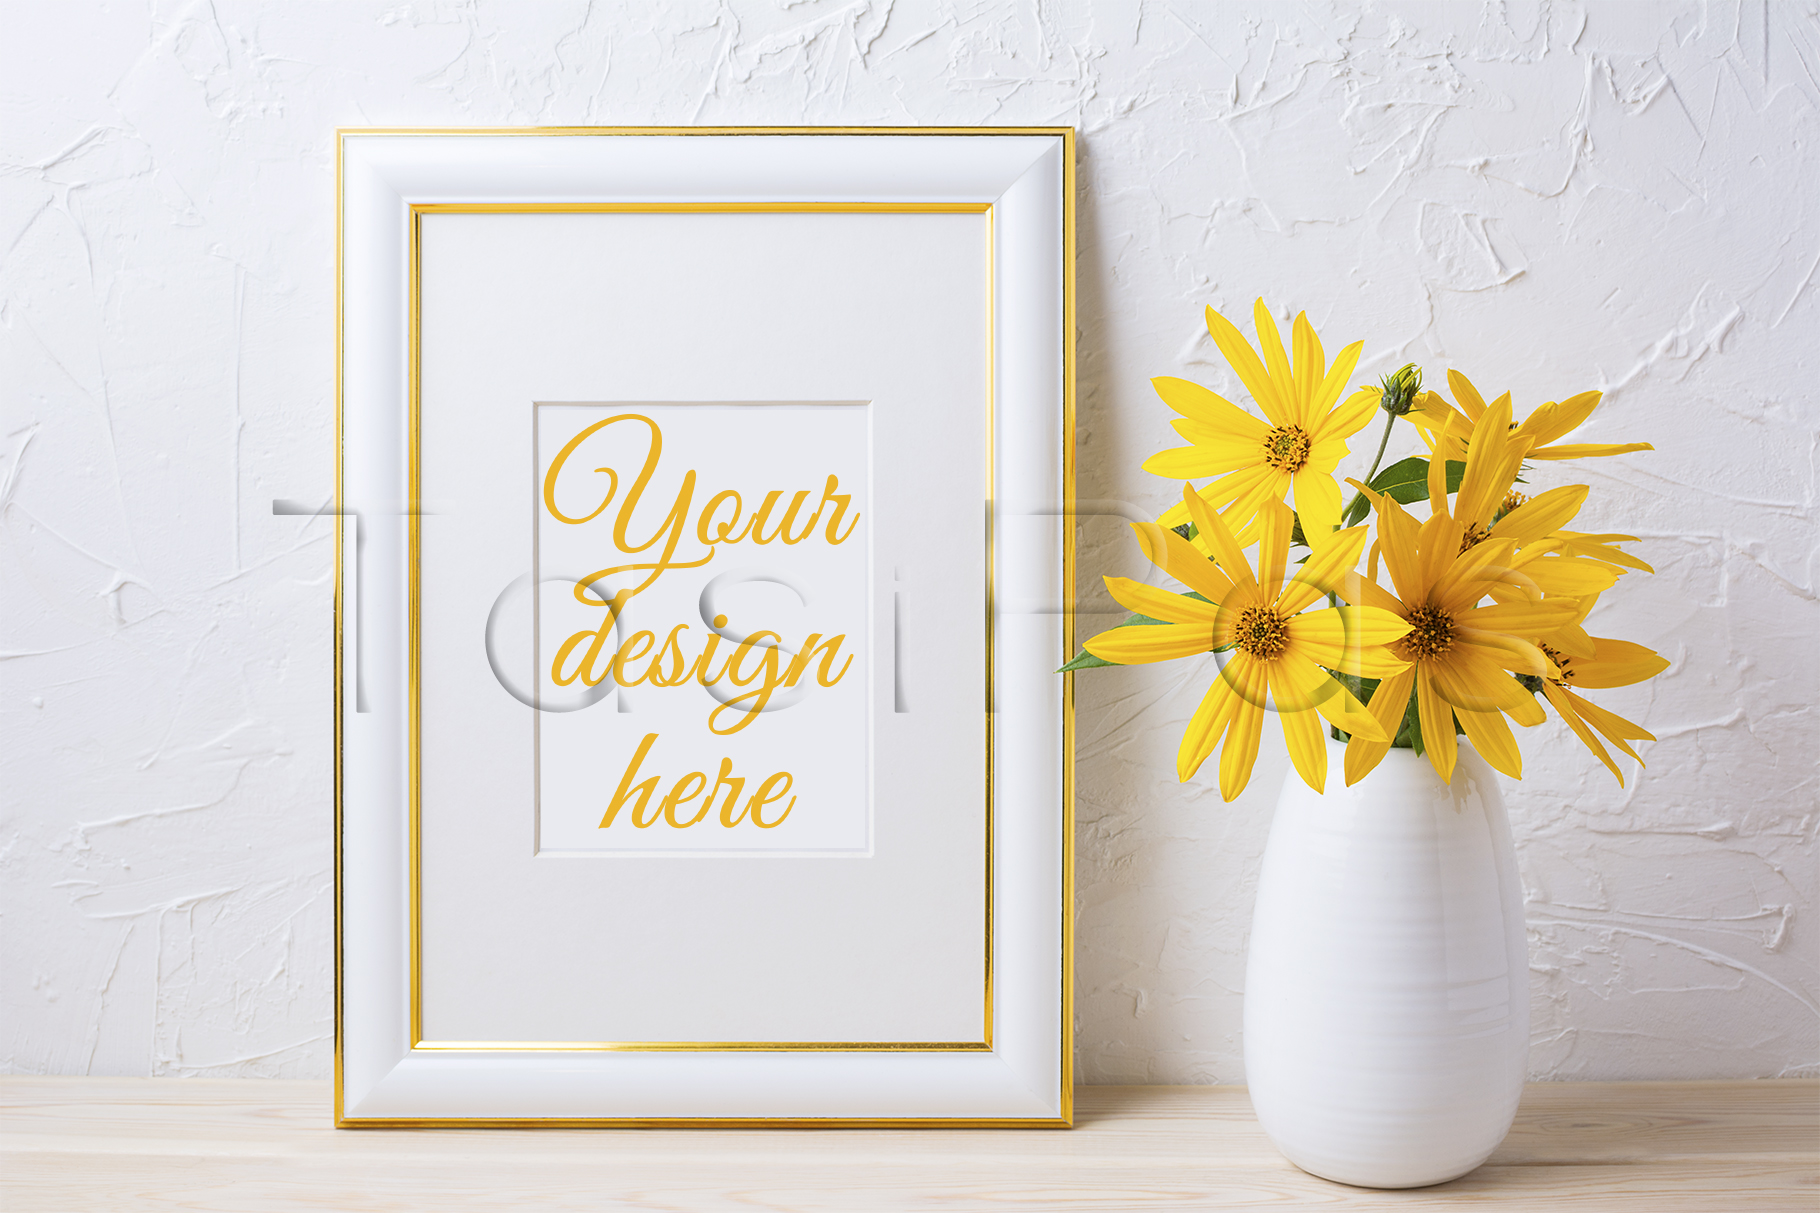 Gold decorated frame mockup with yellow rosinweed flowers example image 1